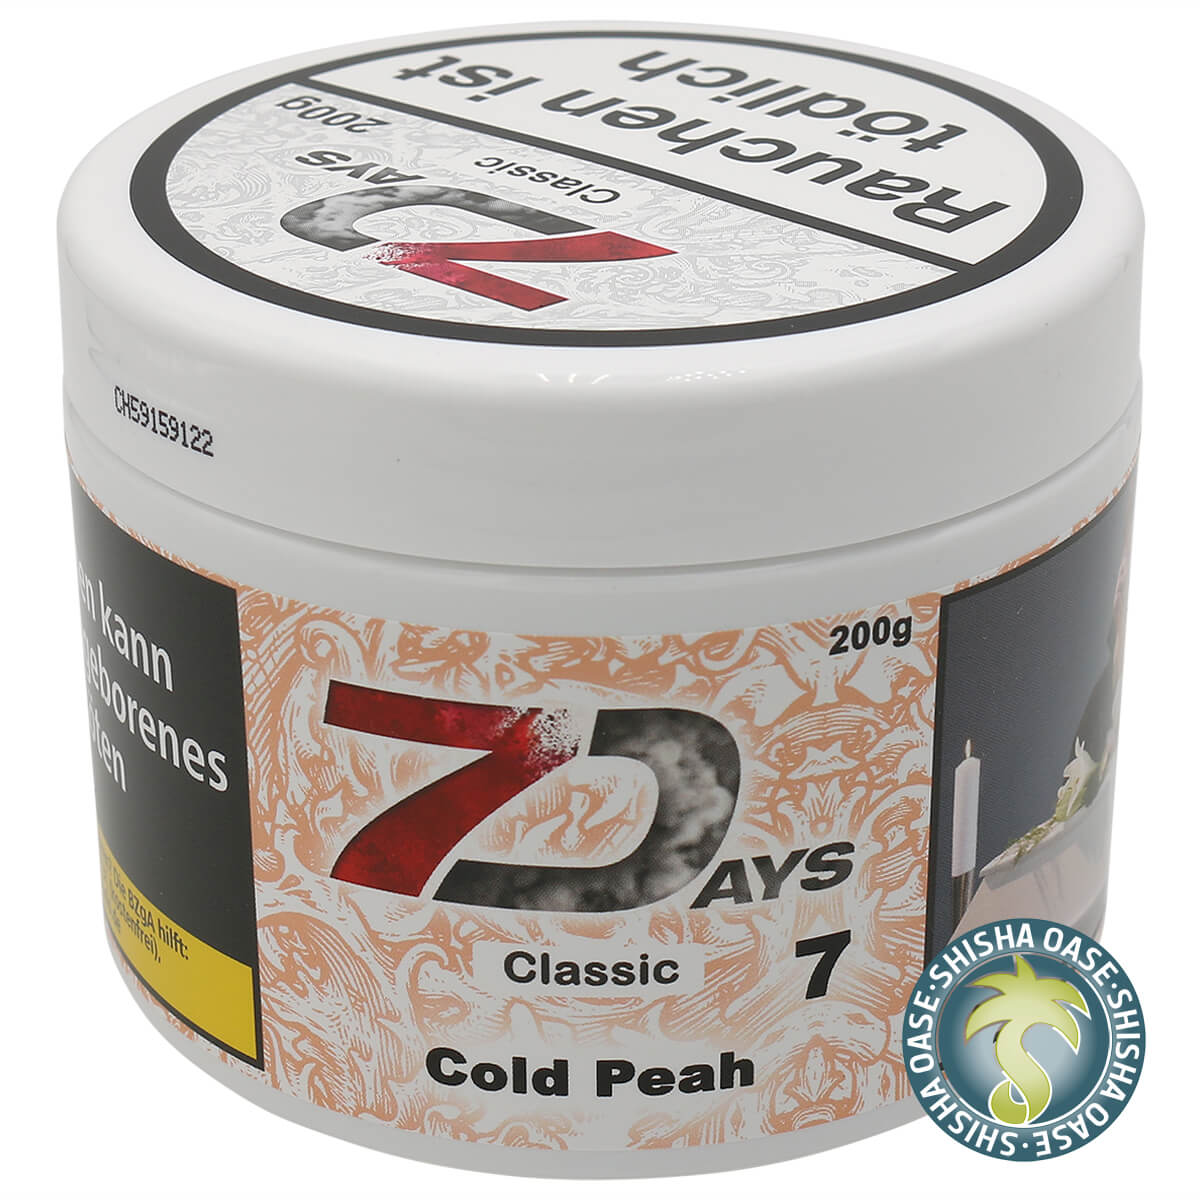 7 Days Tabak - Cold Peah Classic 200g